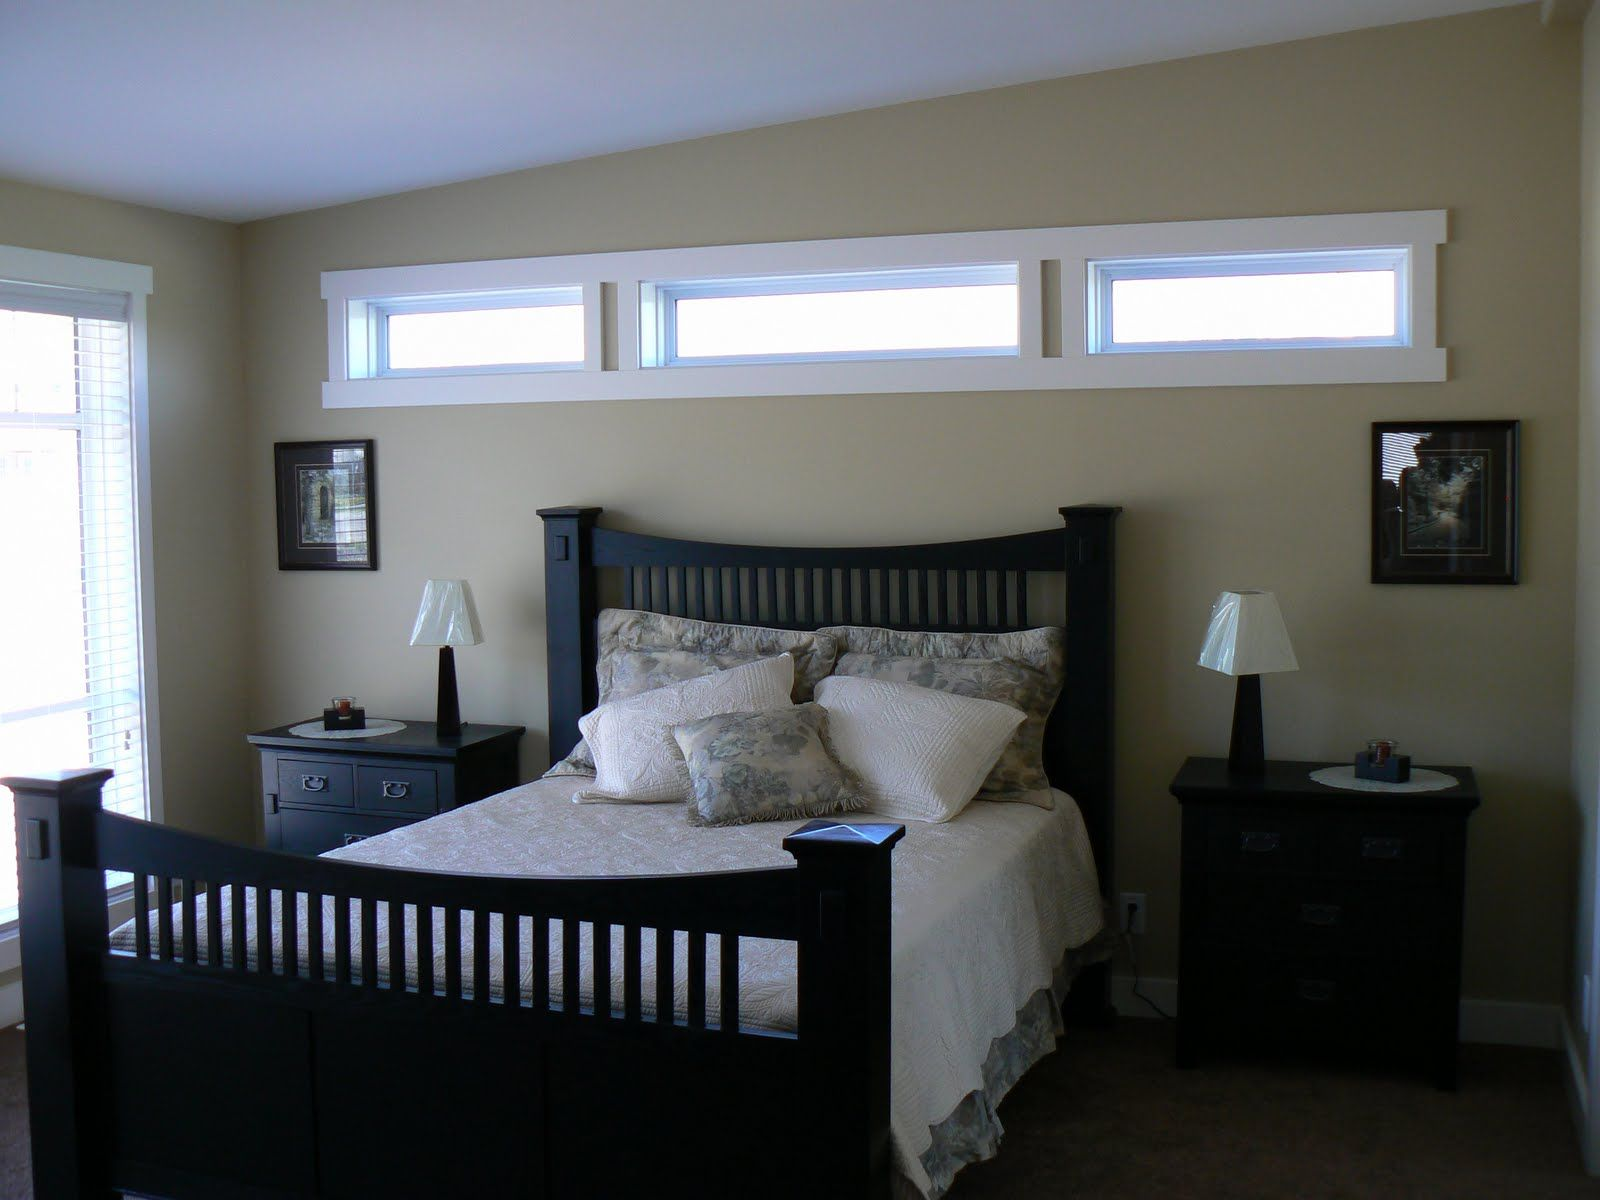 Bedroom Ideas No Windows if there is no room for proper transoms over the doors, consider